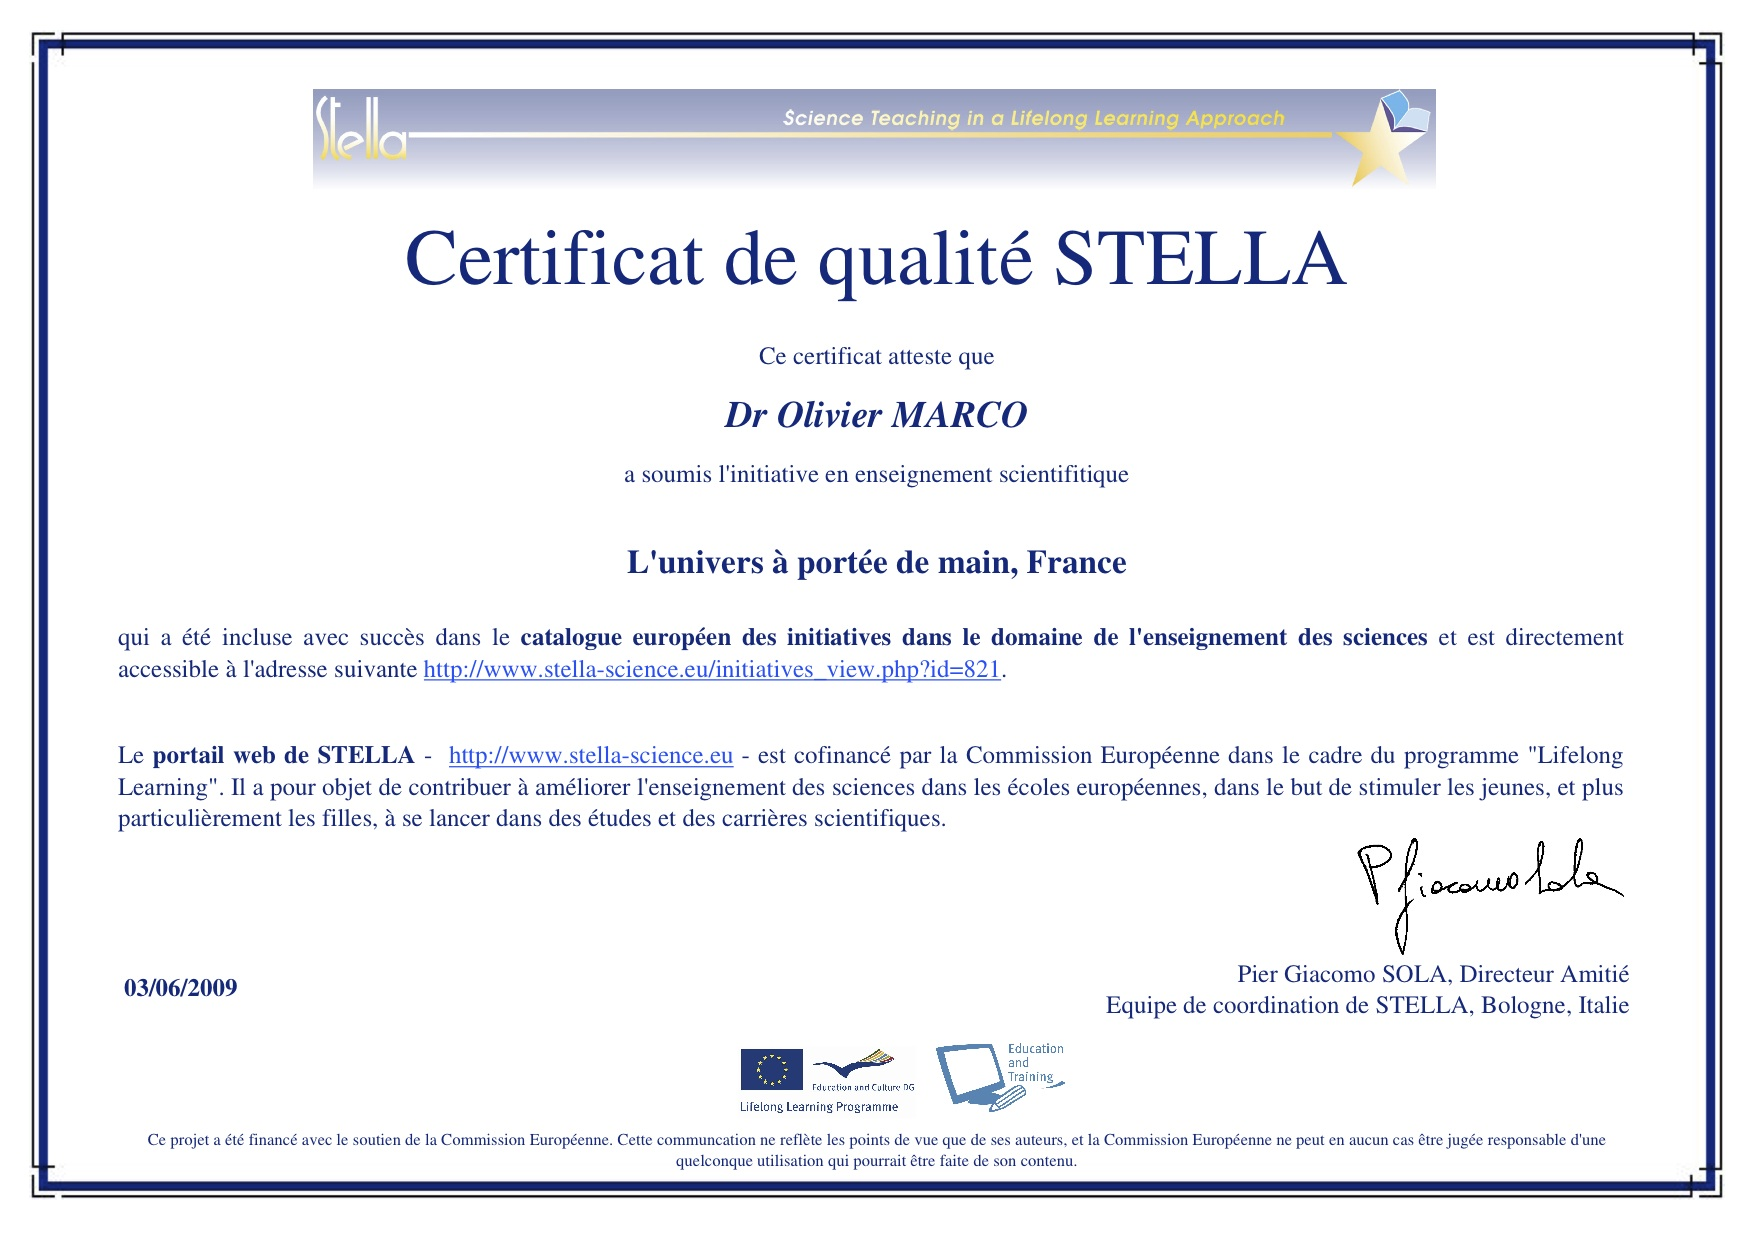 Viewtopic besides 164 Eu Hou Reoit Le Certificat De Qualit Stella V15 164 furthermore Chopped moreover Stock Photography Darts Symbol Strategy Business Success Image18672392 additionally Stock Illustration Ludo Board Game Six Players Image62863068. on dart web design